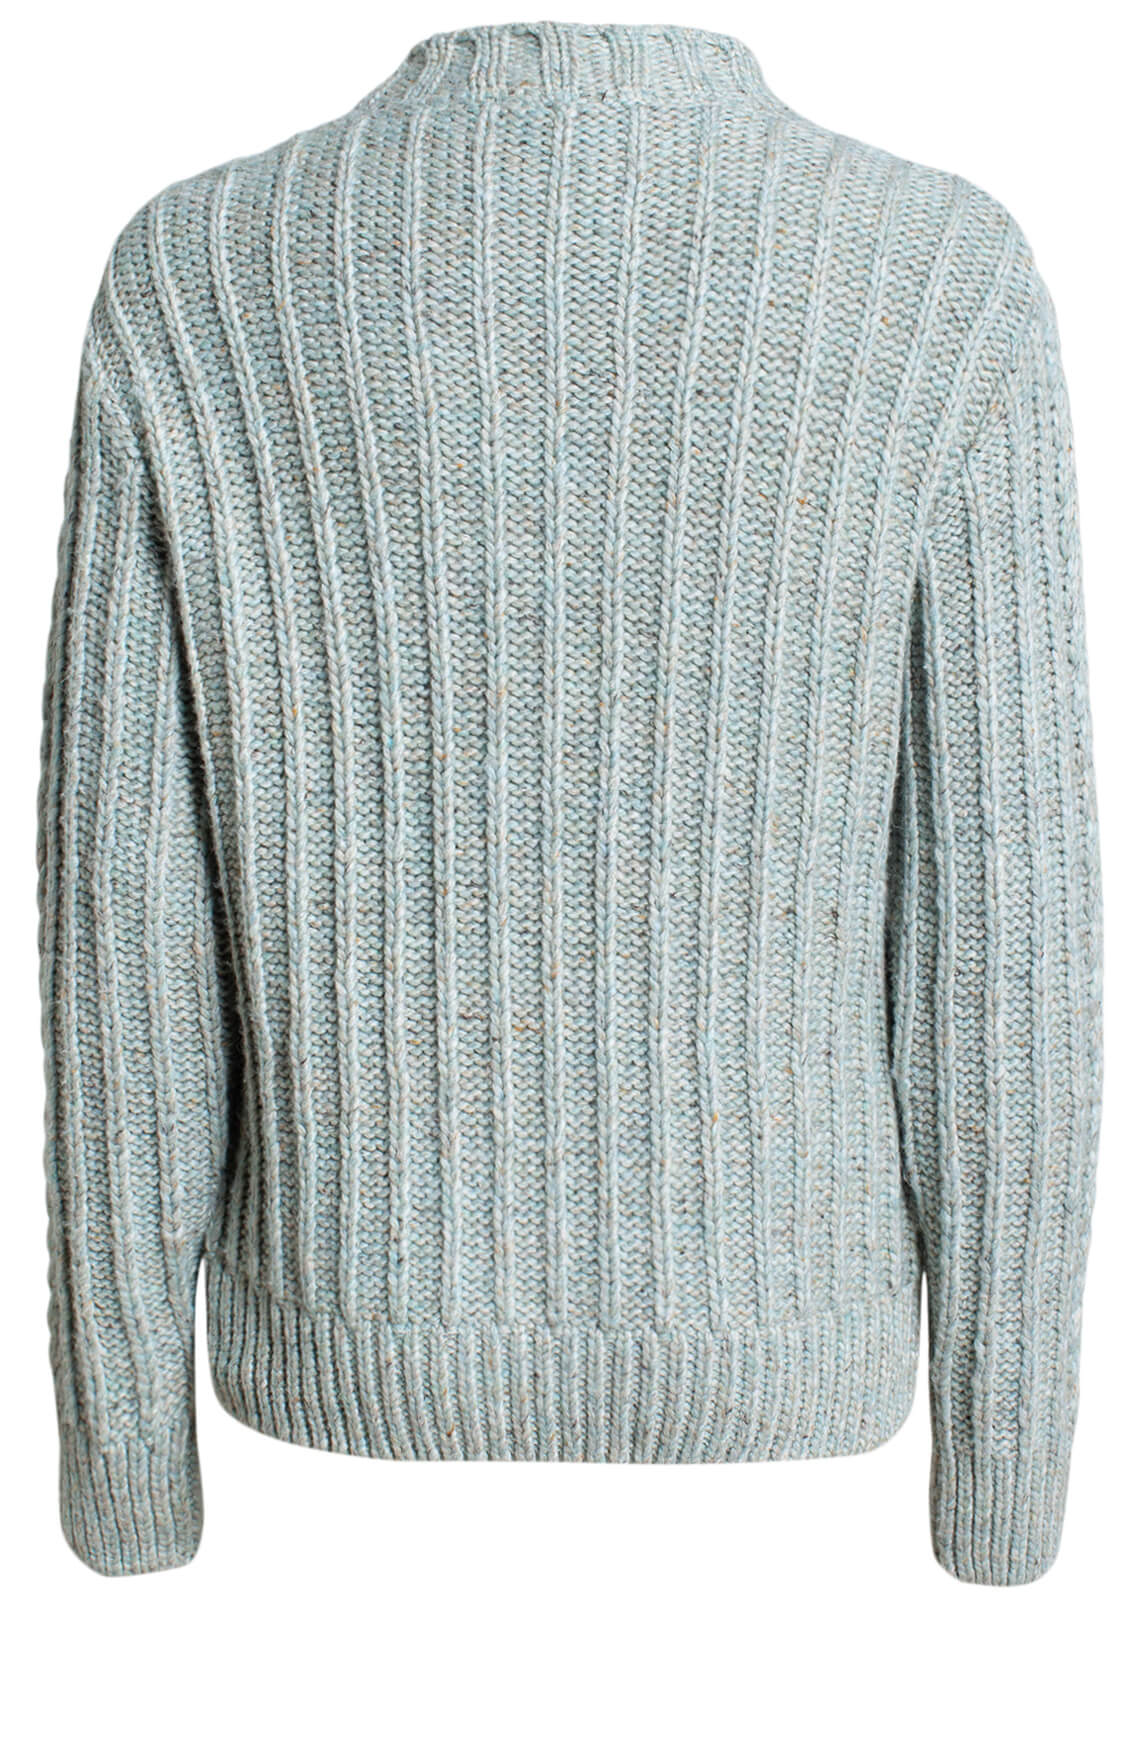 Moscow Dames Livanna cable knit jumper groen